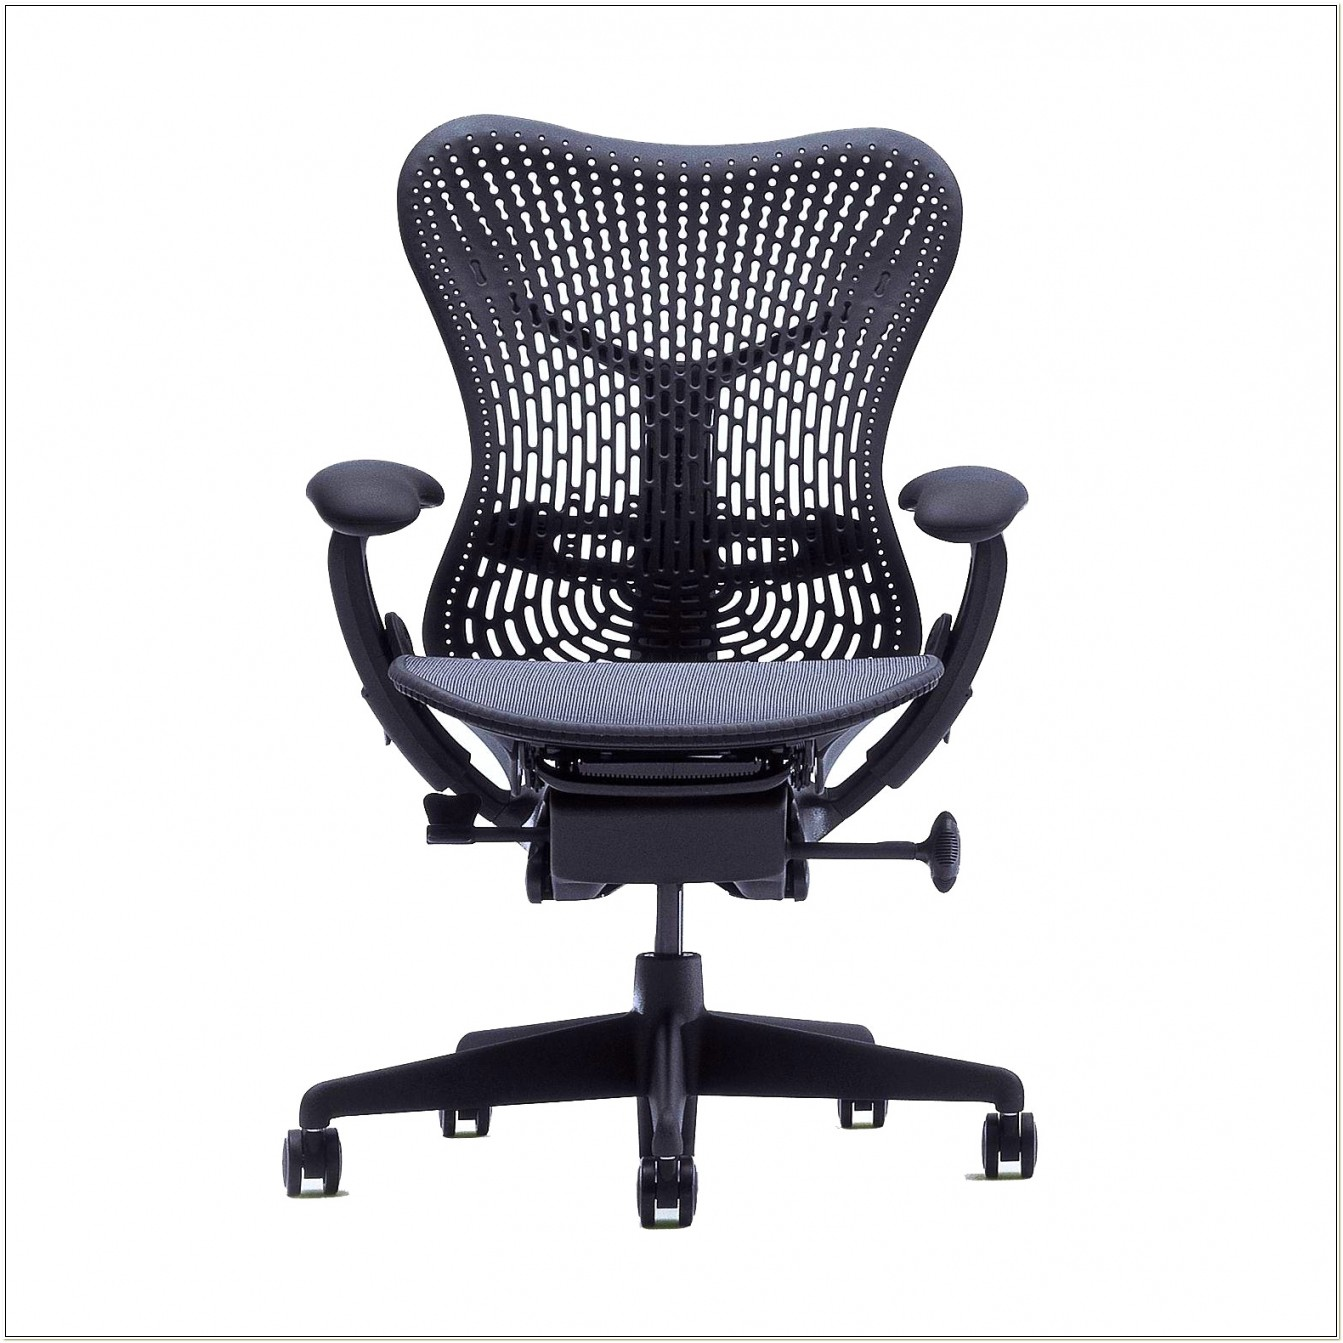 Used Aeron Chair Size C